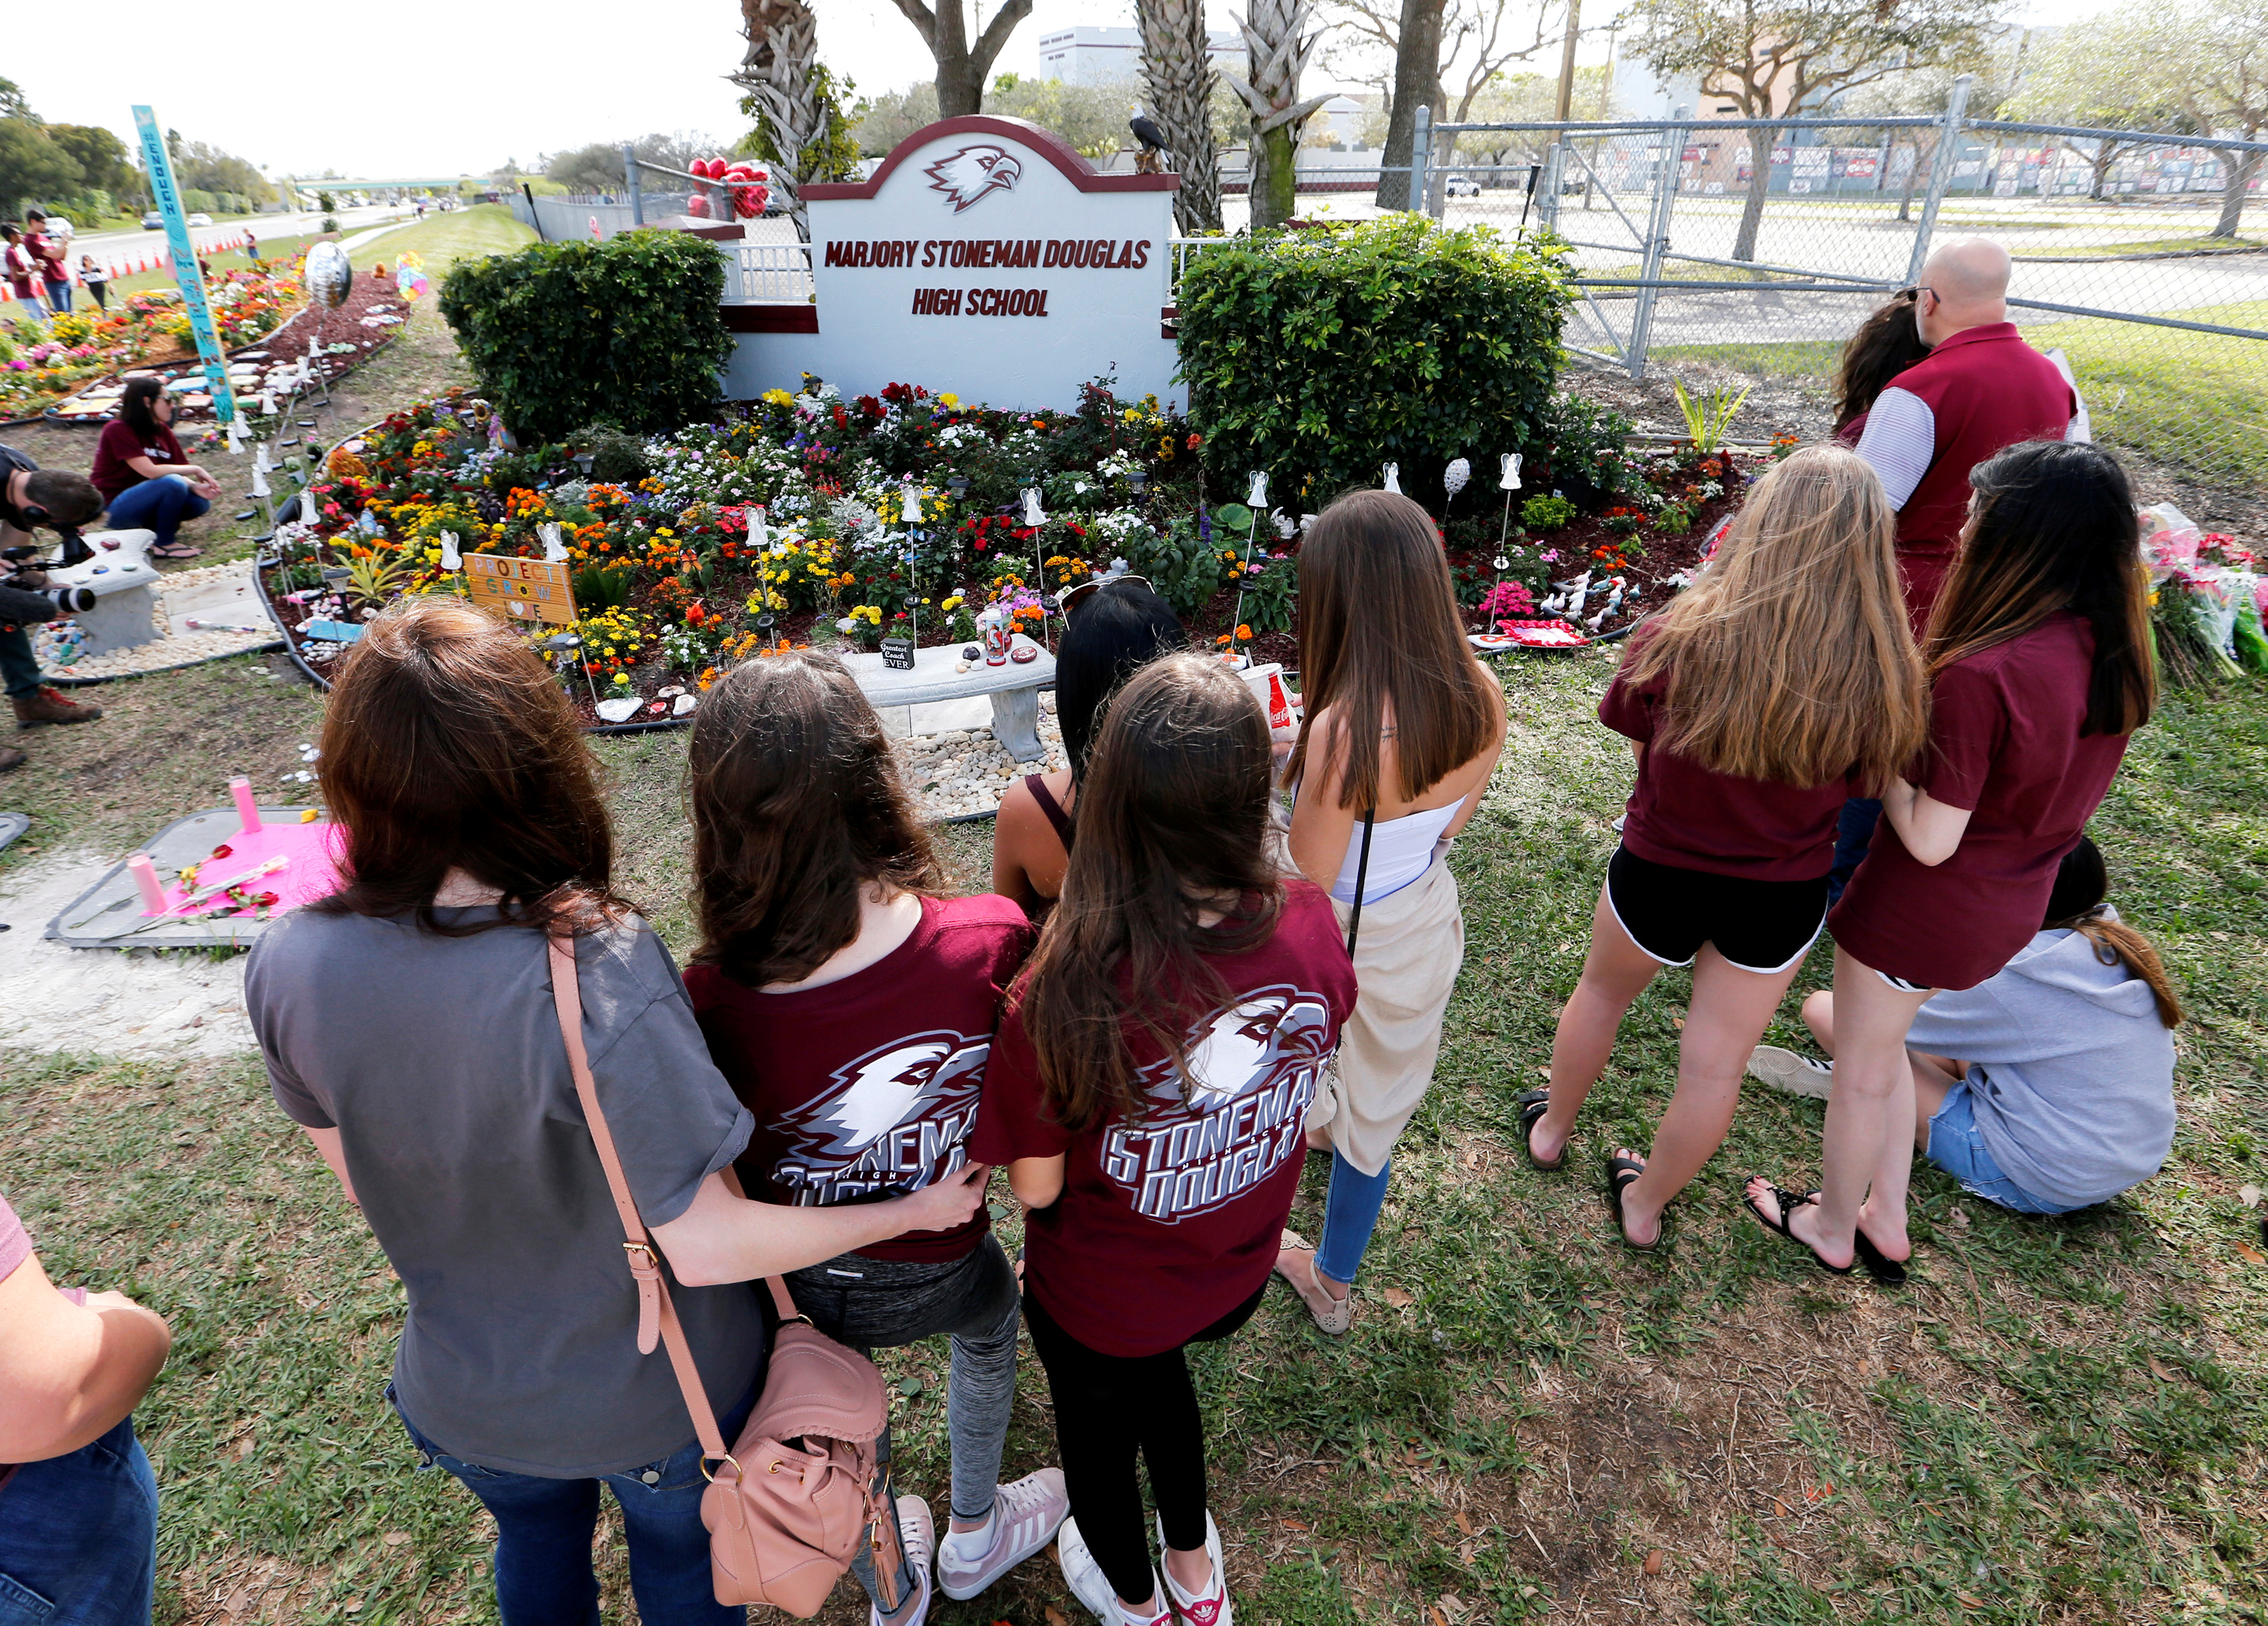 A memorial is viewed by parents and students on campus at a memorial on the one year anniversary of the shooting which claimed 17 lives at Marjory Stoneman Douglas High School in Parkland, Florida, U.S., February 14, 2019. REUTERS/Joe Skipper